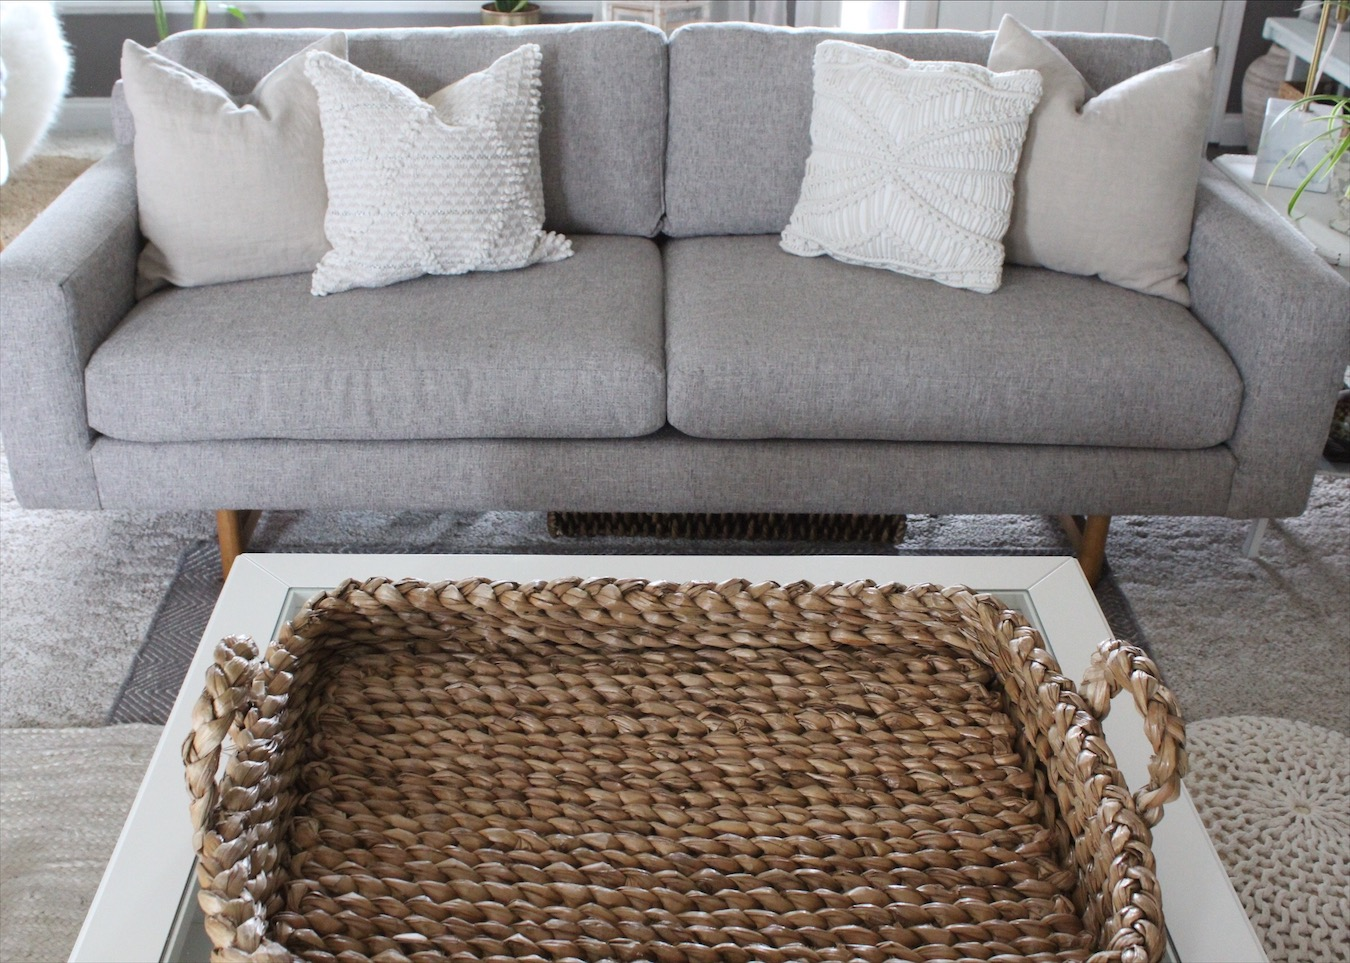 5 key accessories every home needs - step 2 Decorative tray